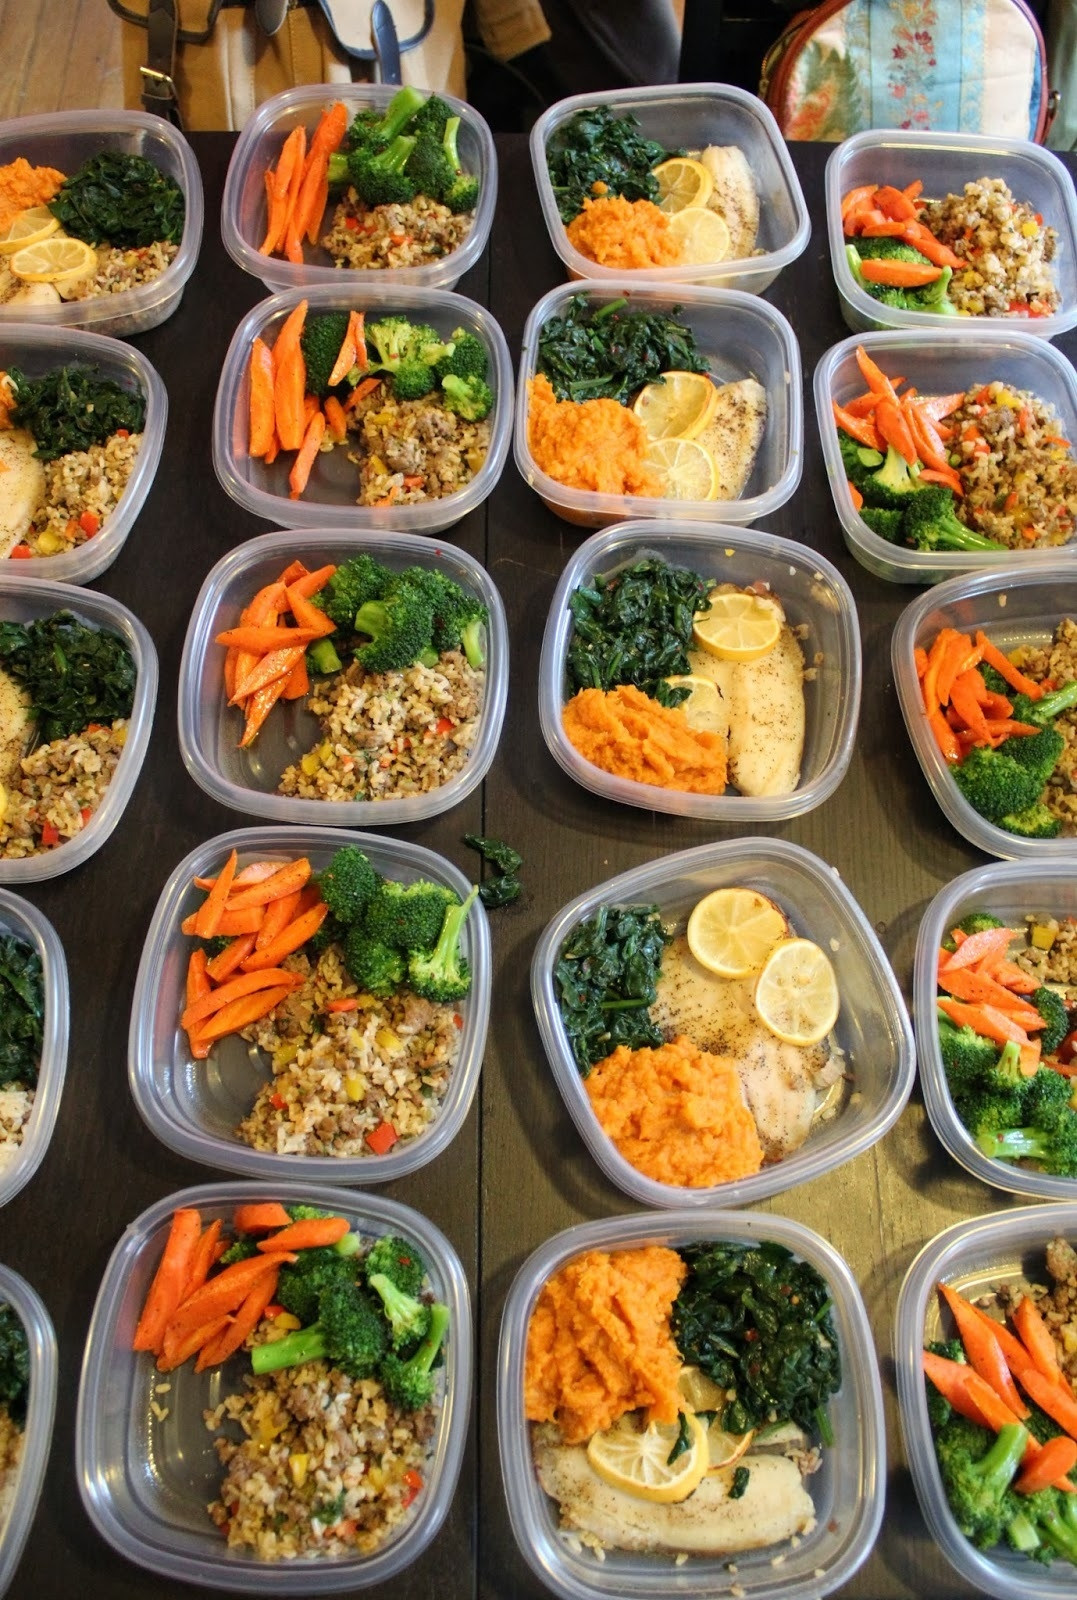 Healthy Dinners For The Week  Healthy Meal Prep Ideas For The WeekWritings and Papers